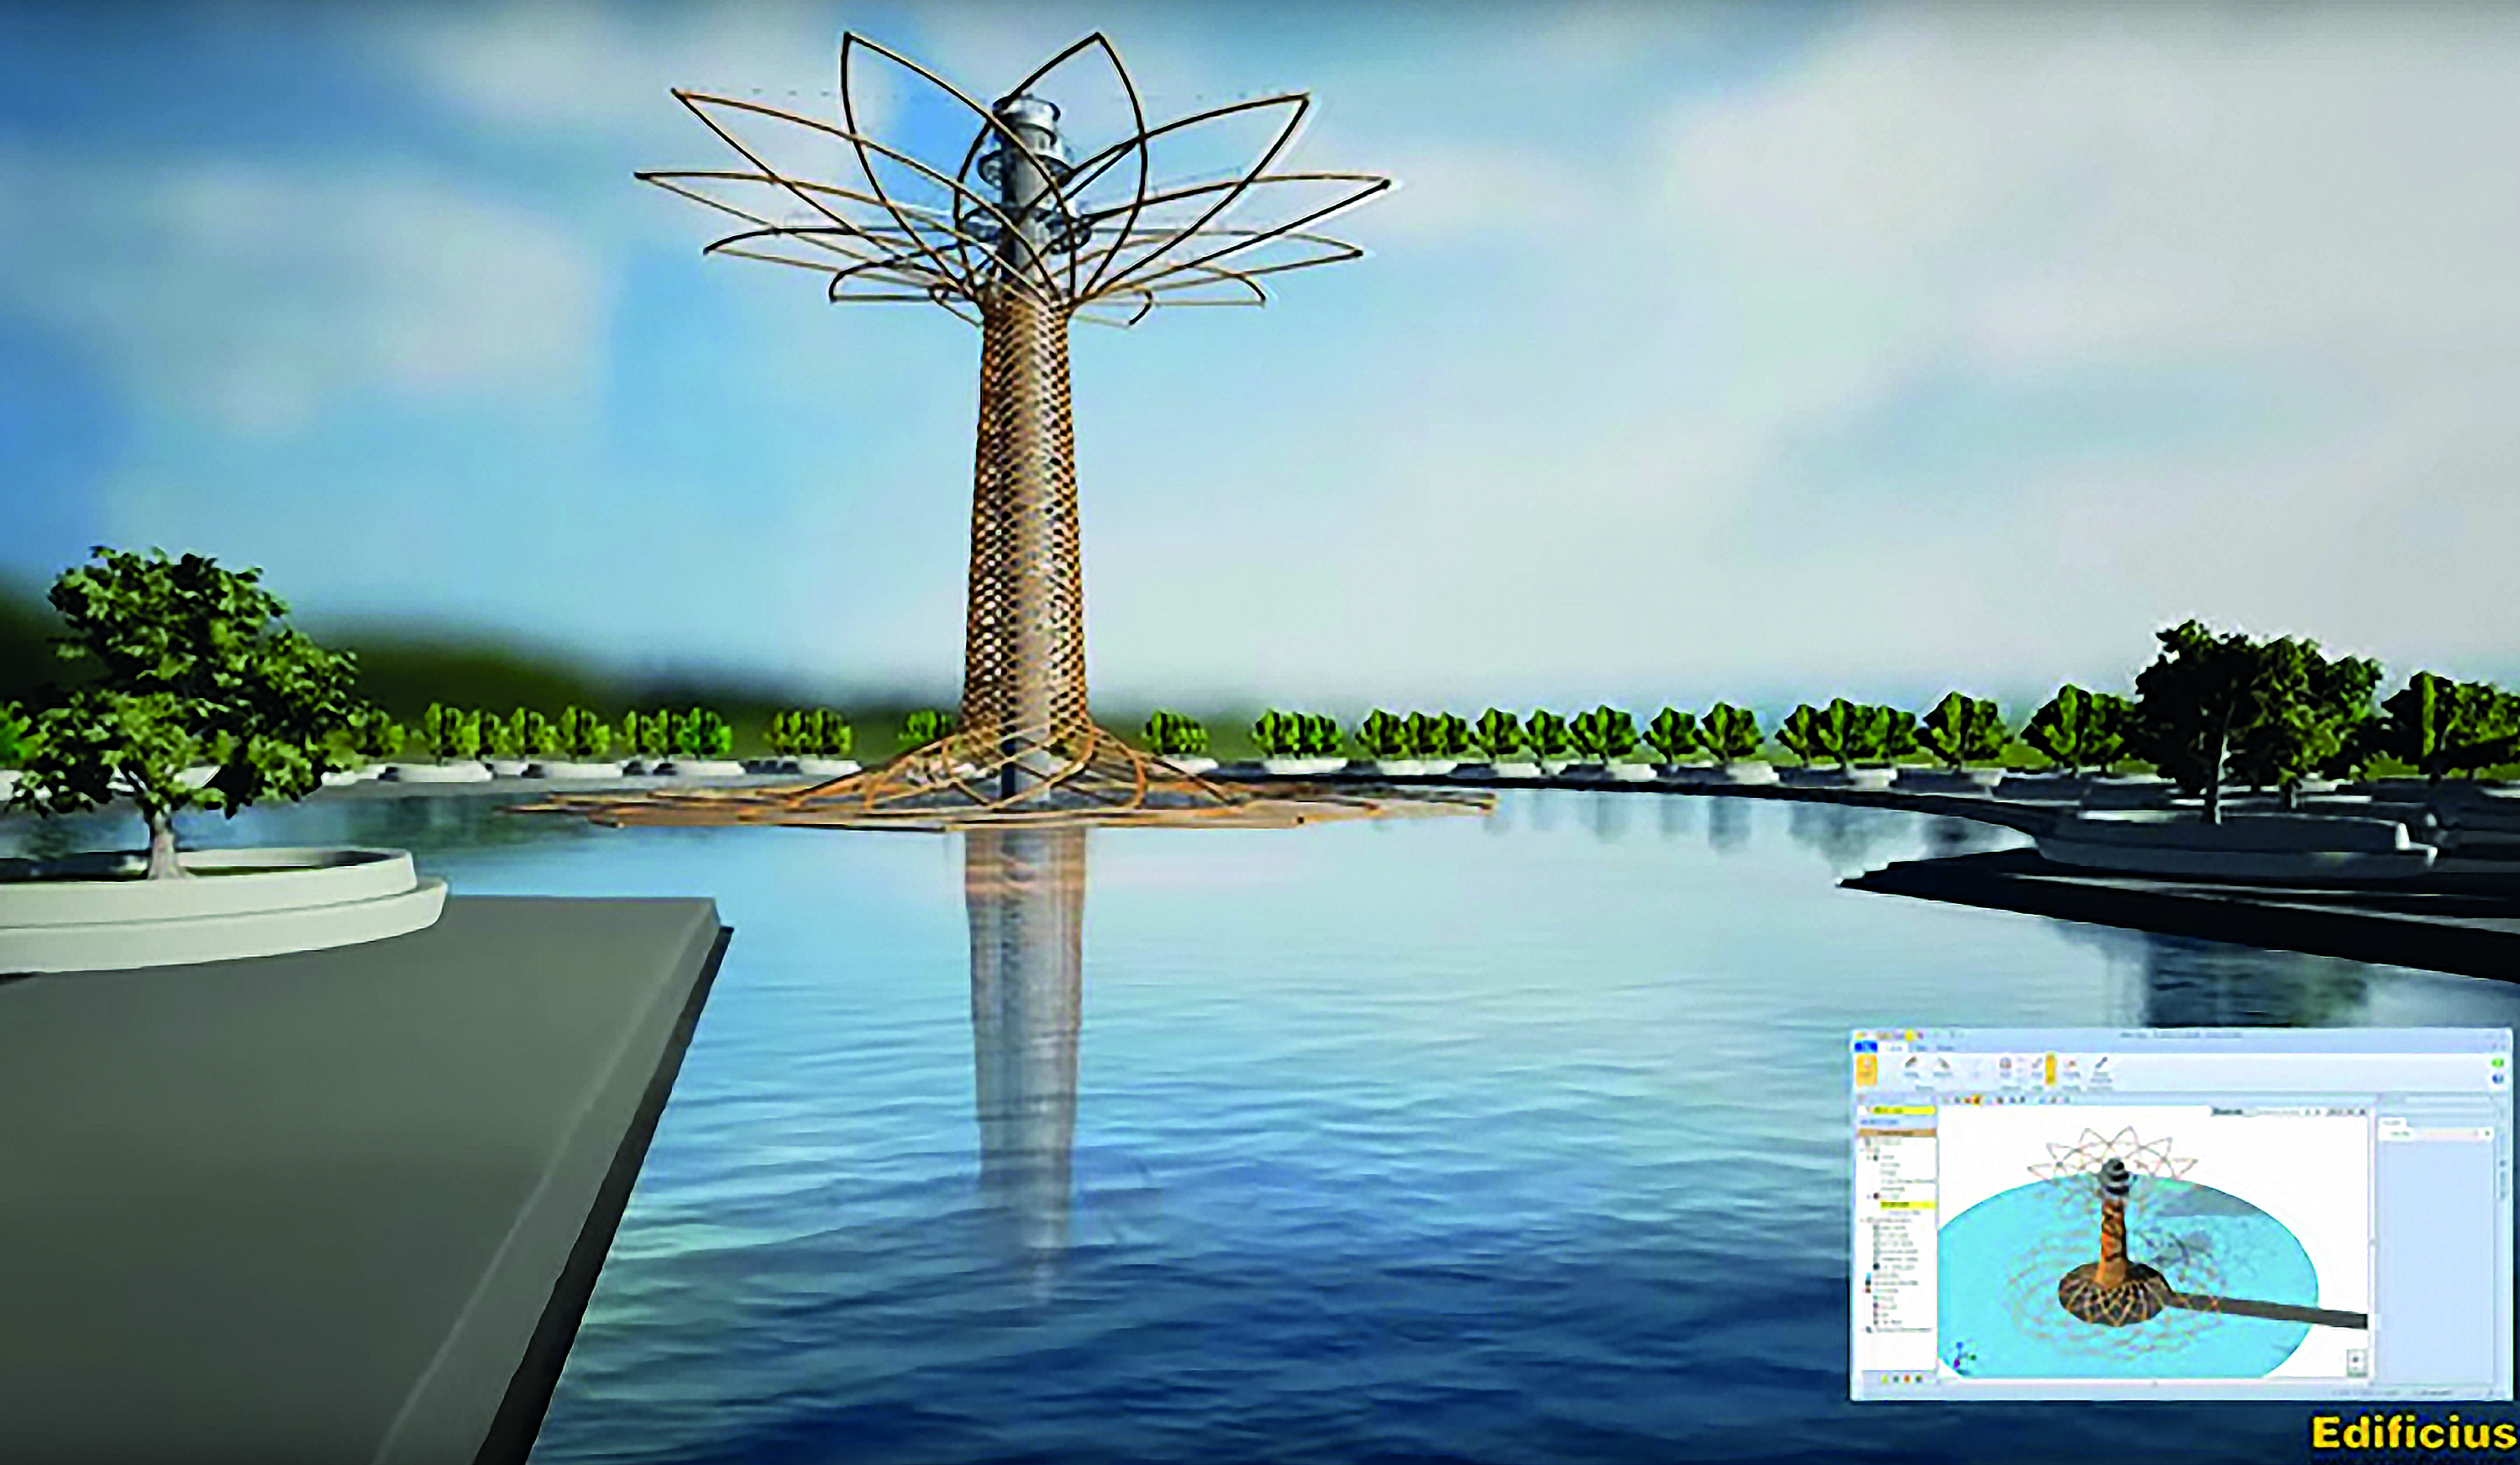 BIM design with Buildingsus, 3D of the Tree of Life – EXPO 2015, architectural design and concept by Marco Balich, Studio Giò Forma